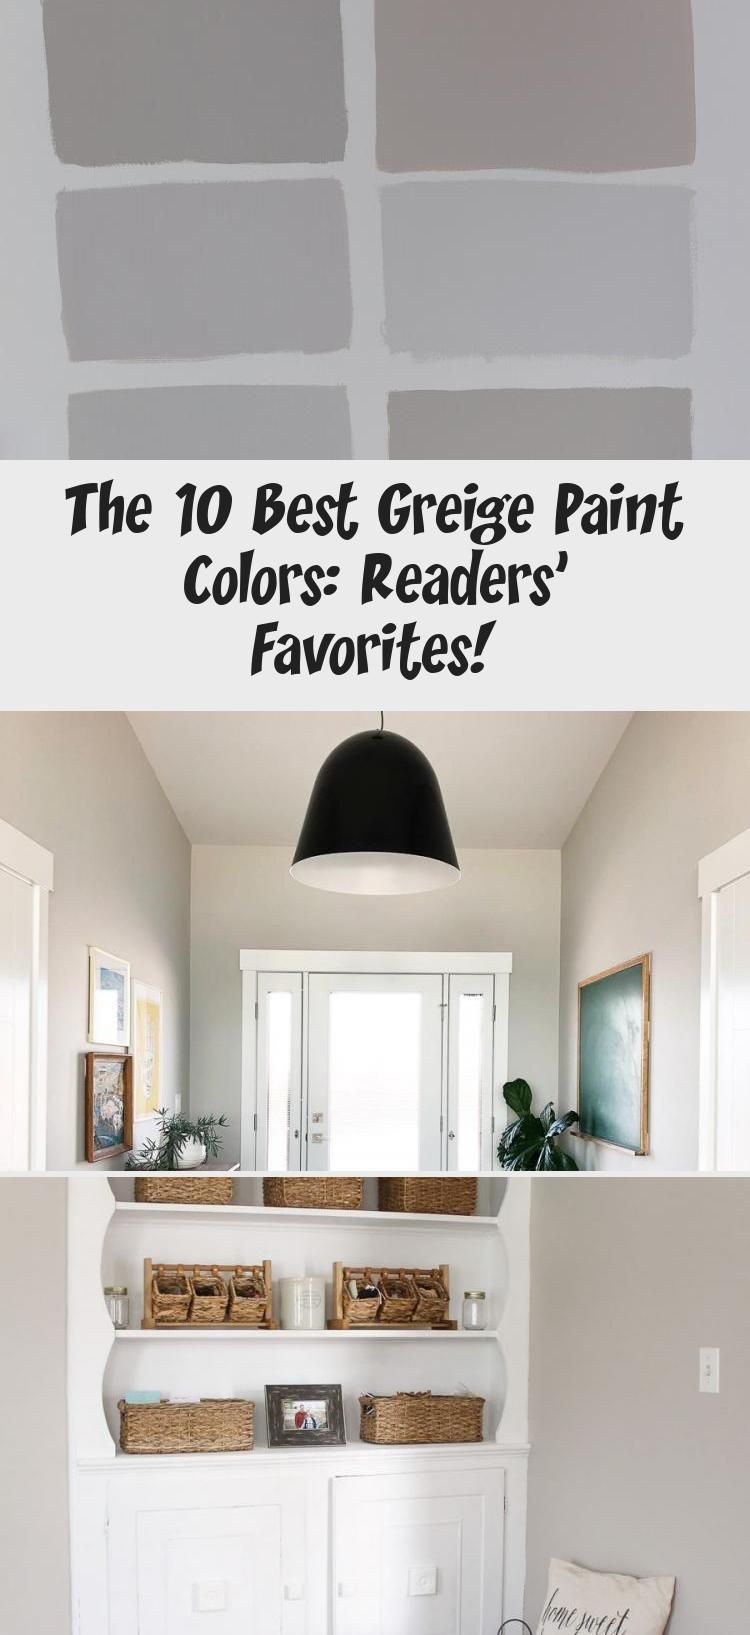 the 10 best greige paint colors readers favorites on 10 most popular paint colors id=36289